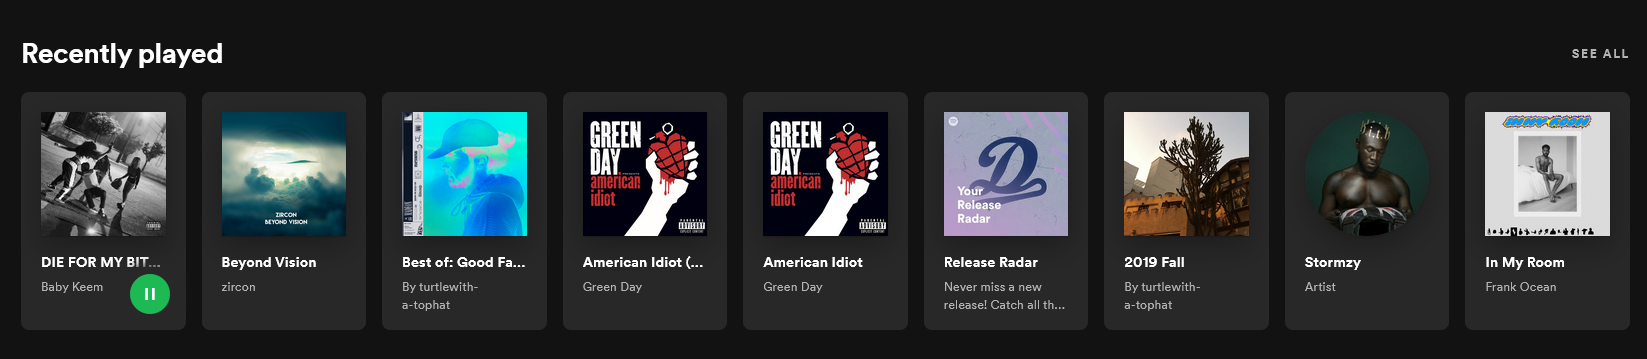 Spotify Recently Played.png